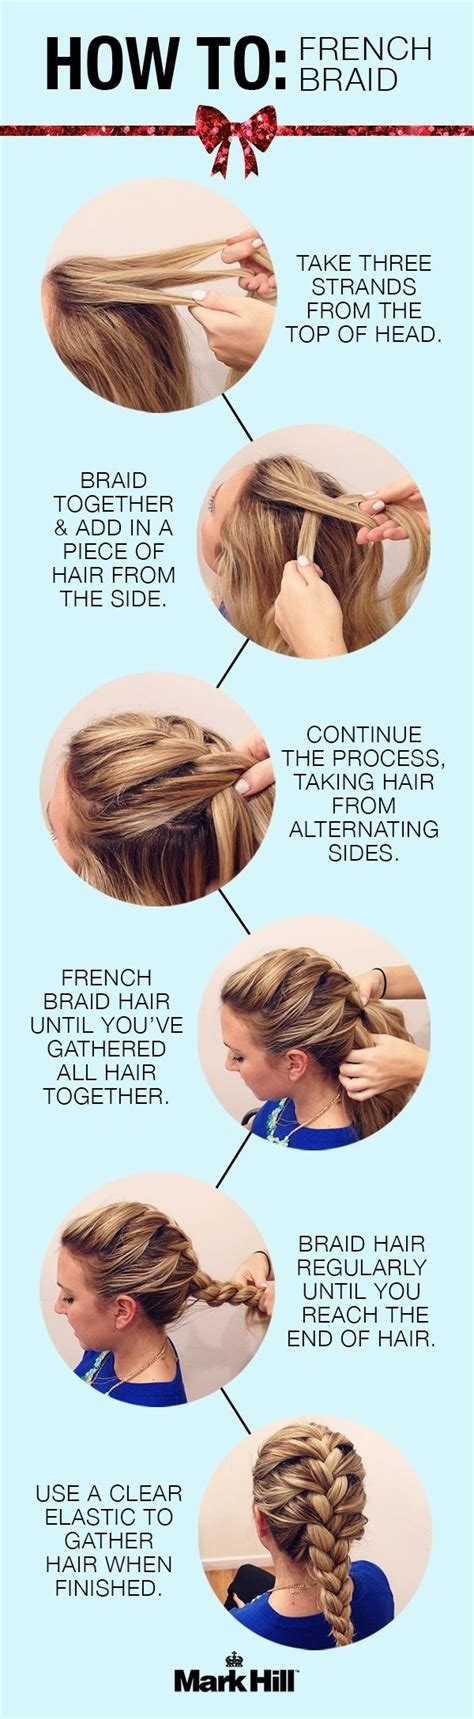 how to i french plait my own side hair 25 best ideas about how to braid hair on pinterest